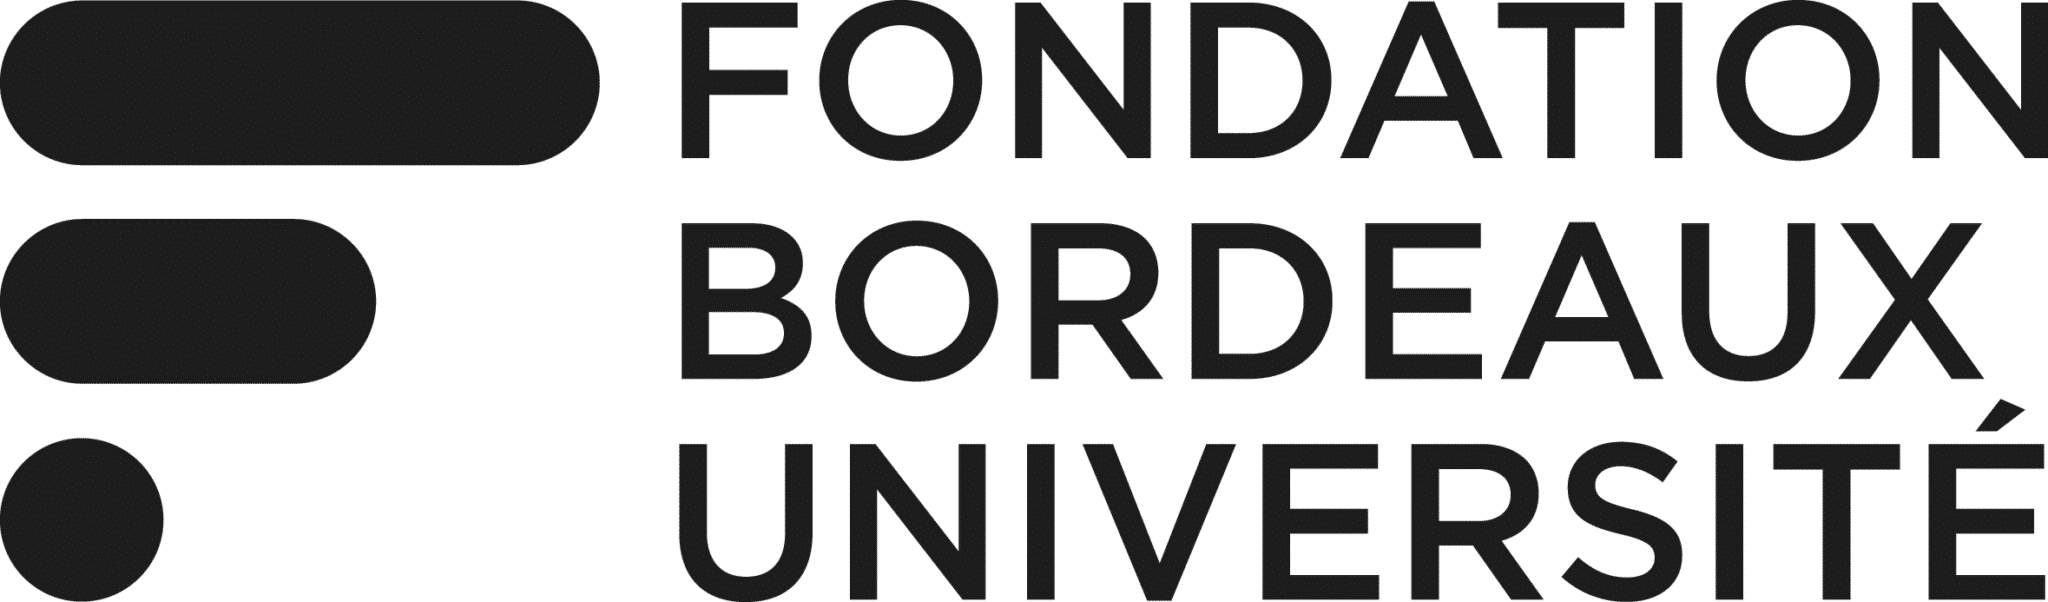 logo fondation bordeaux université